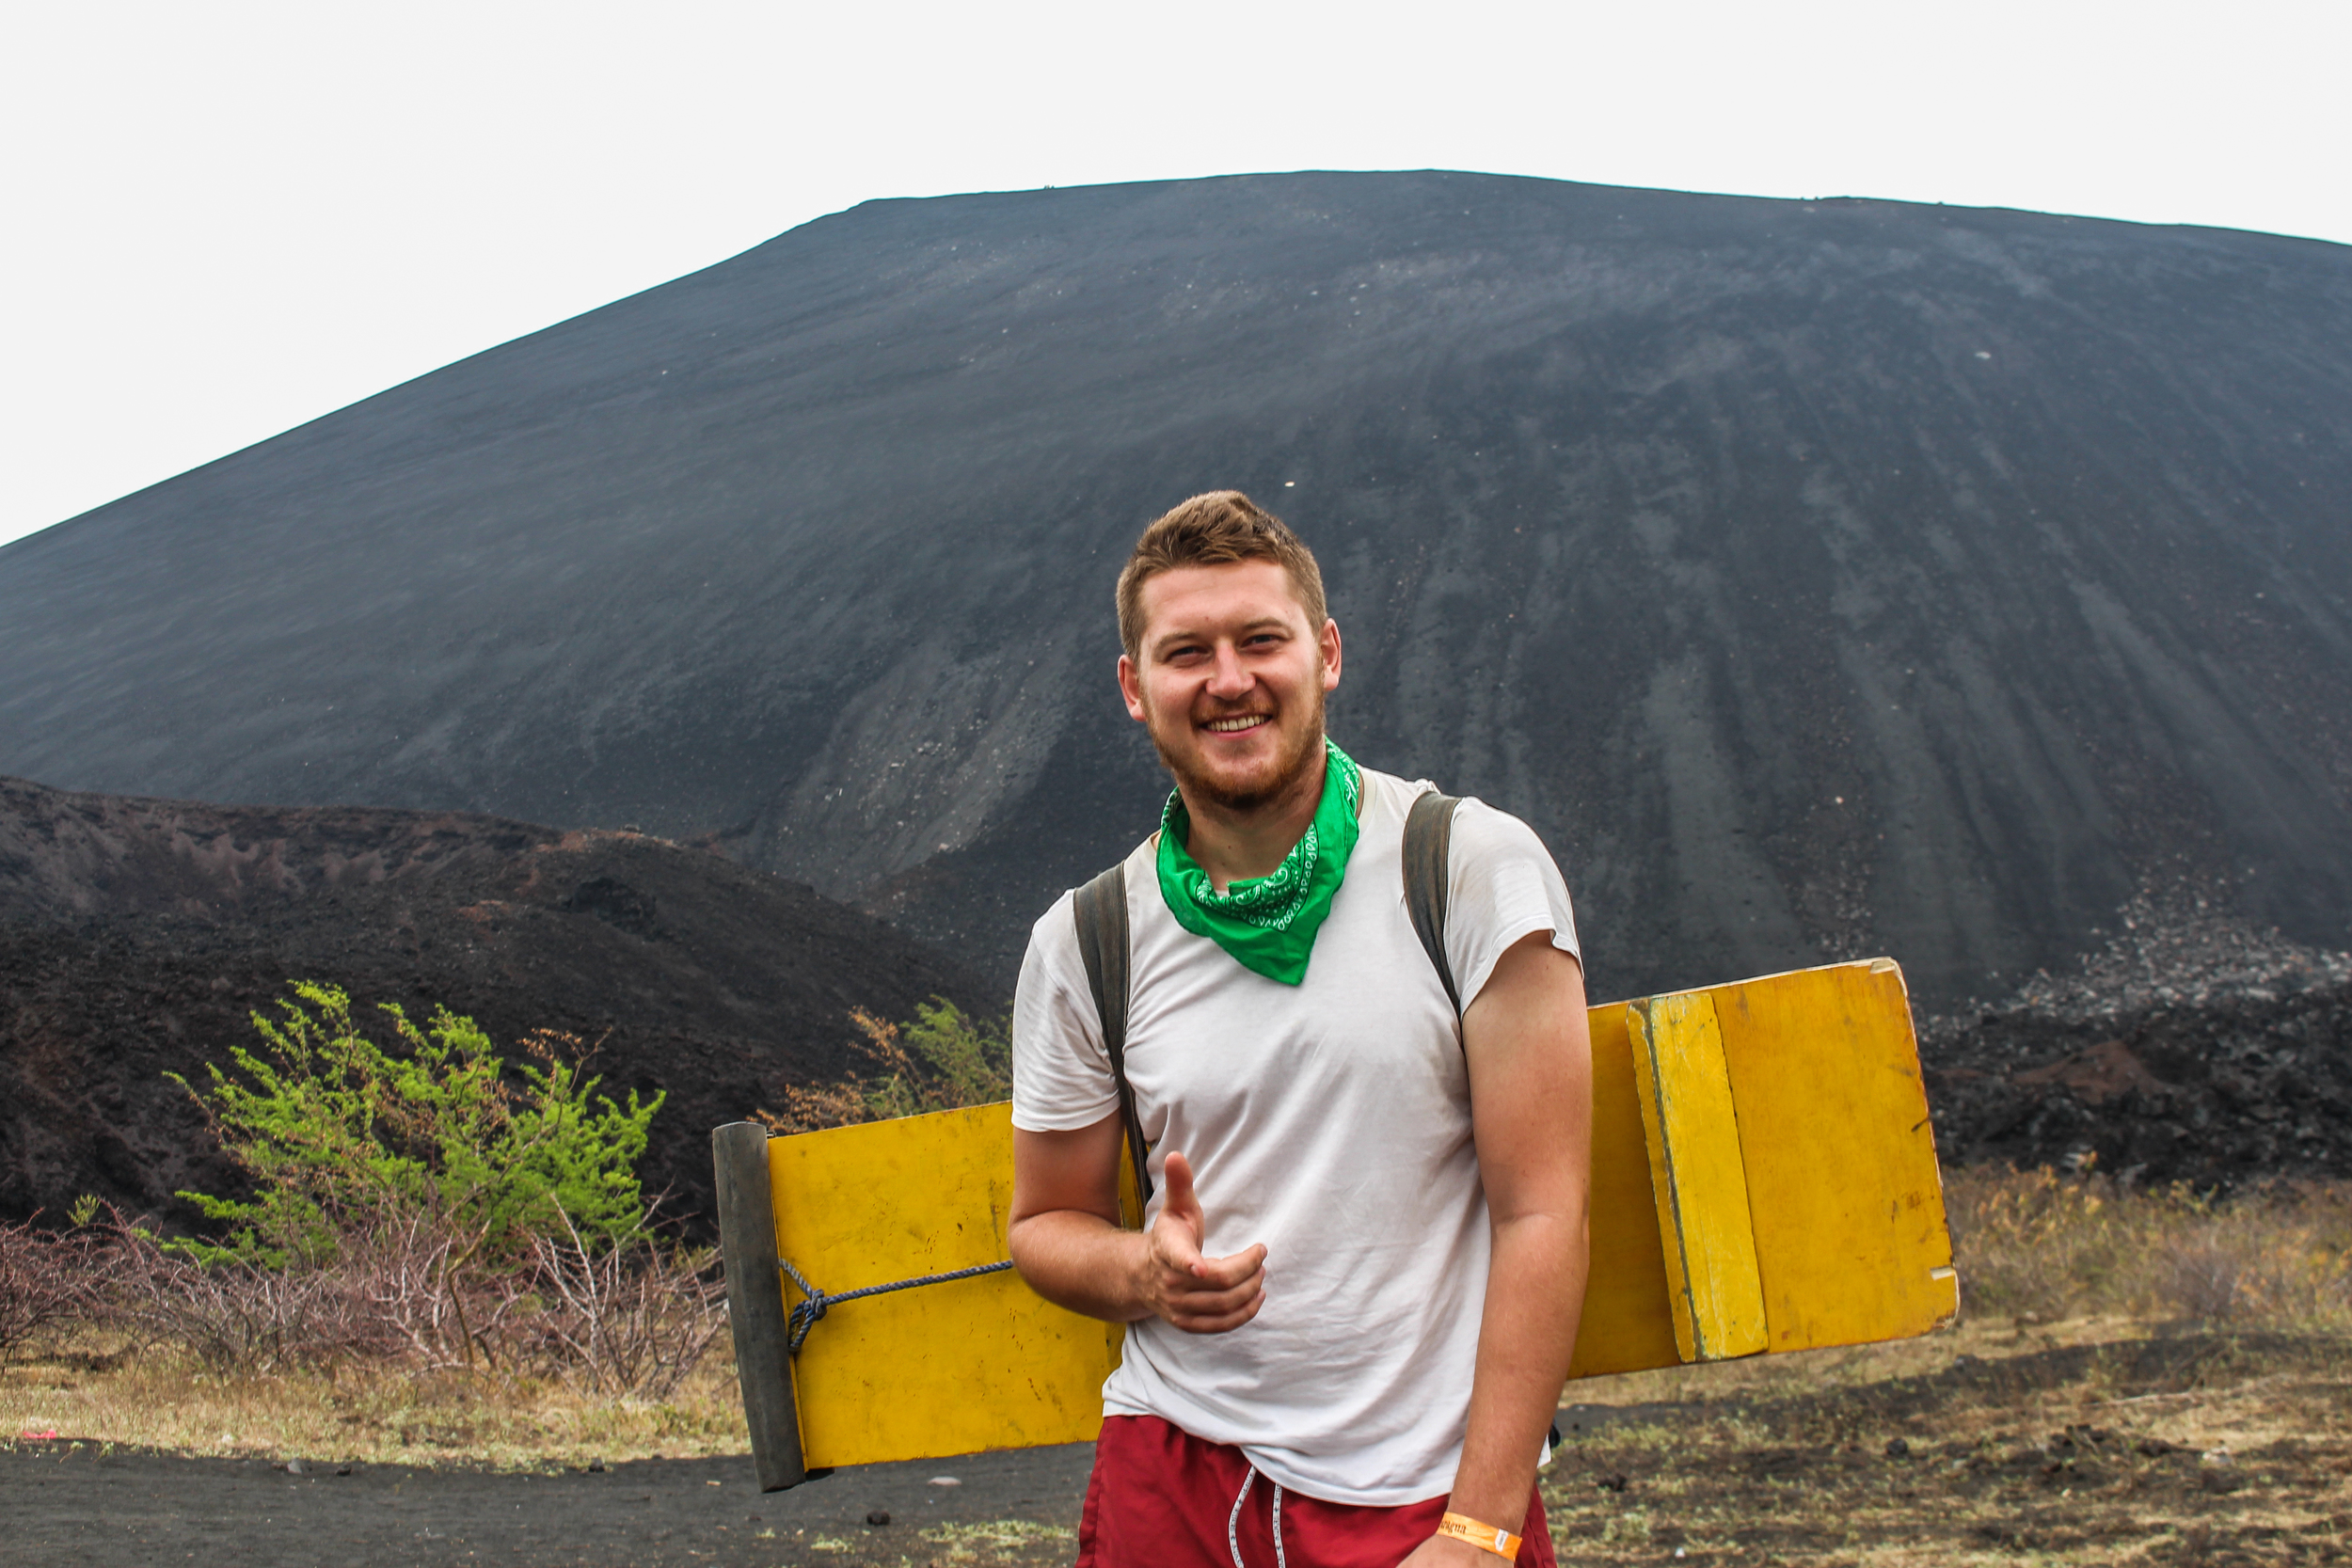 A British volcano boarder stands at the foot of Cerro Negro